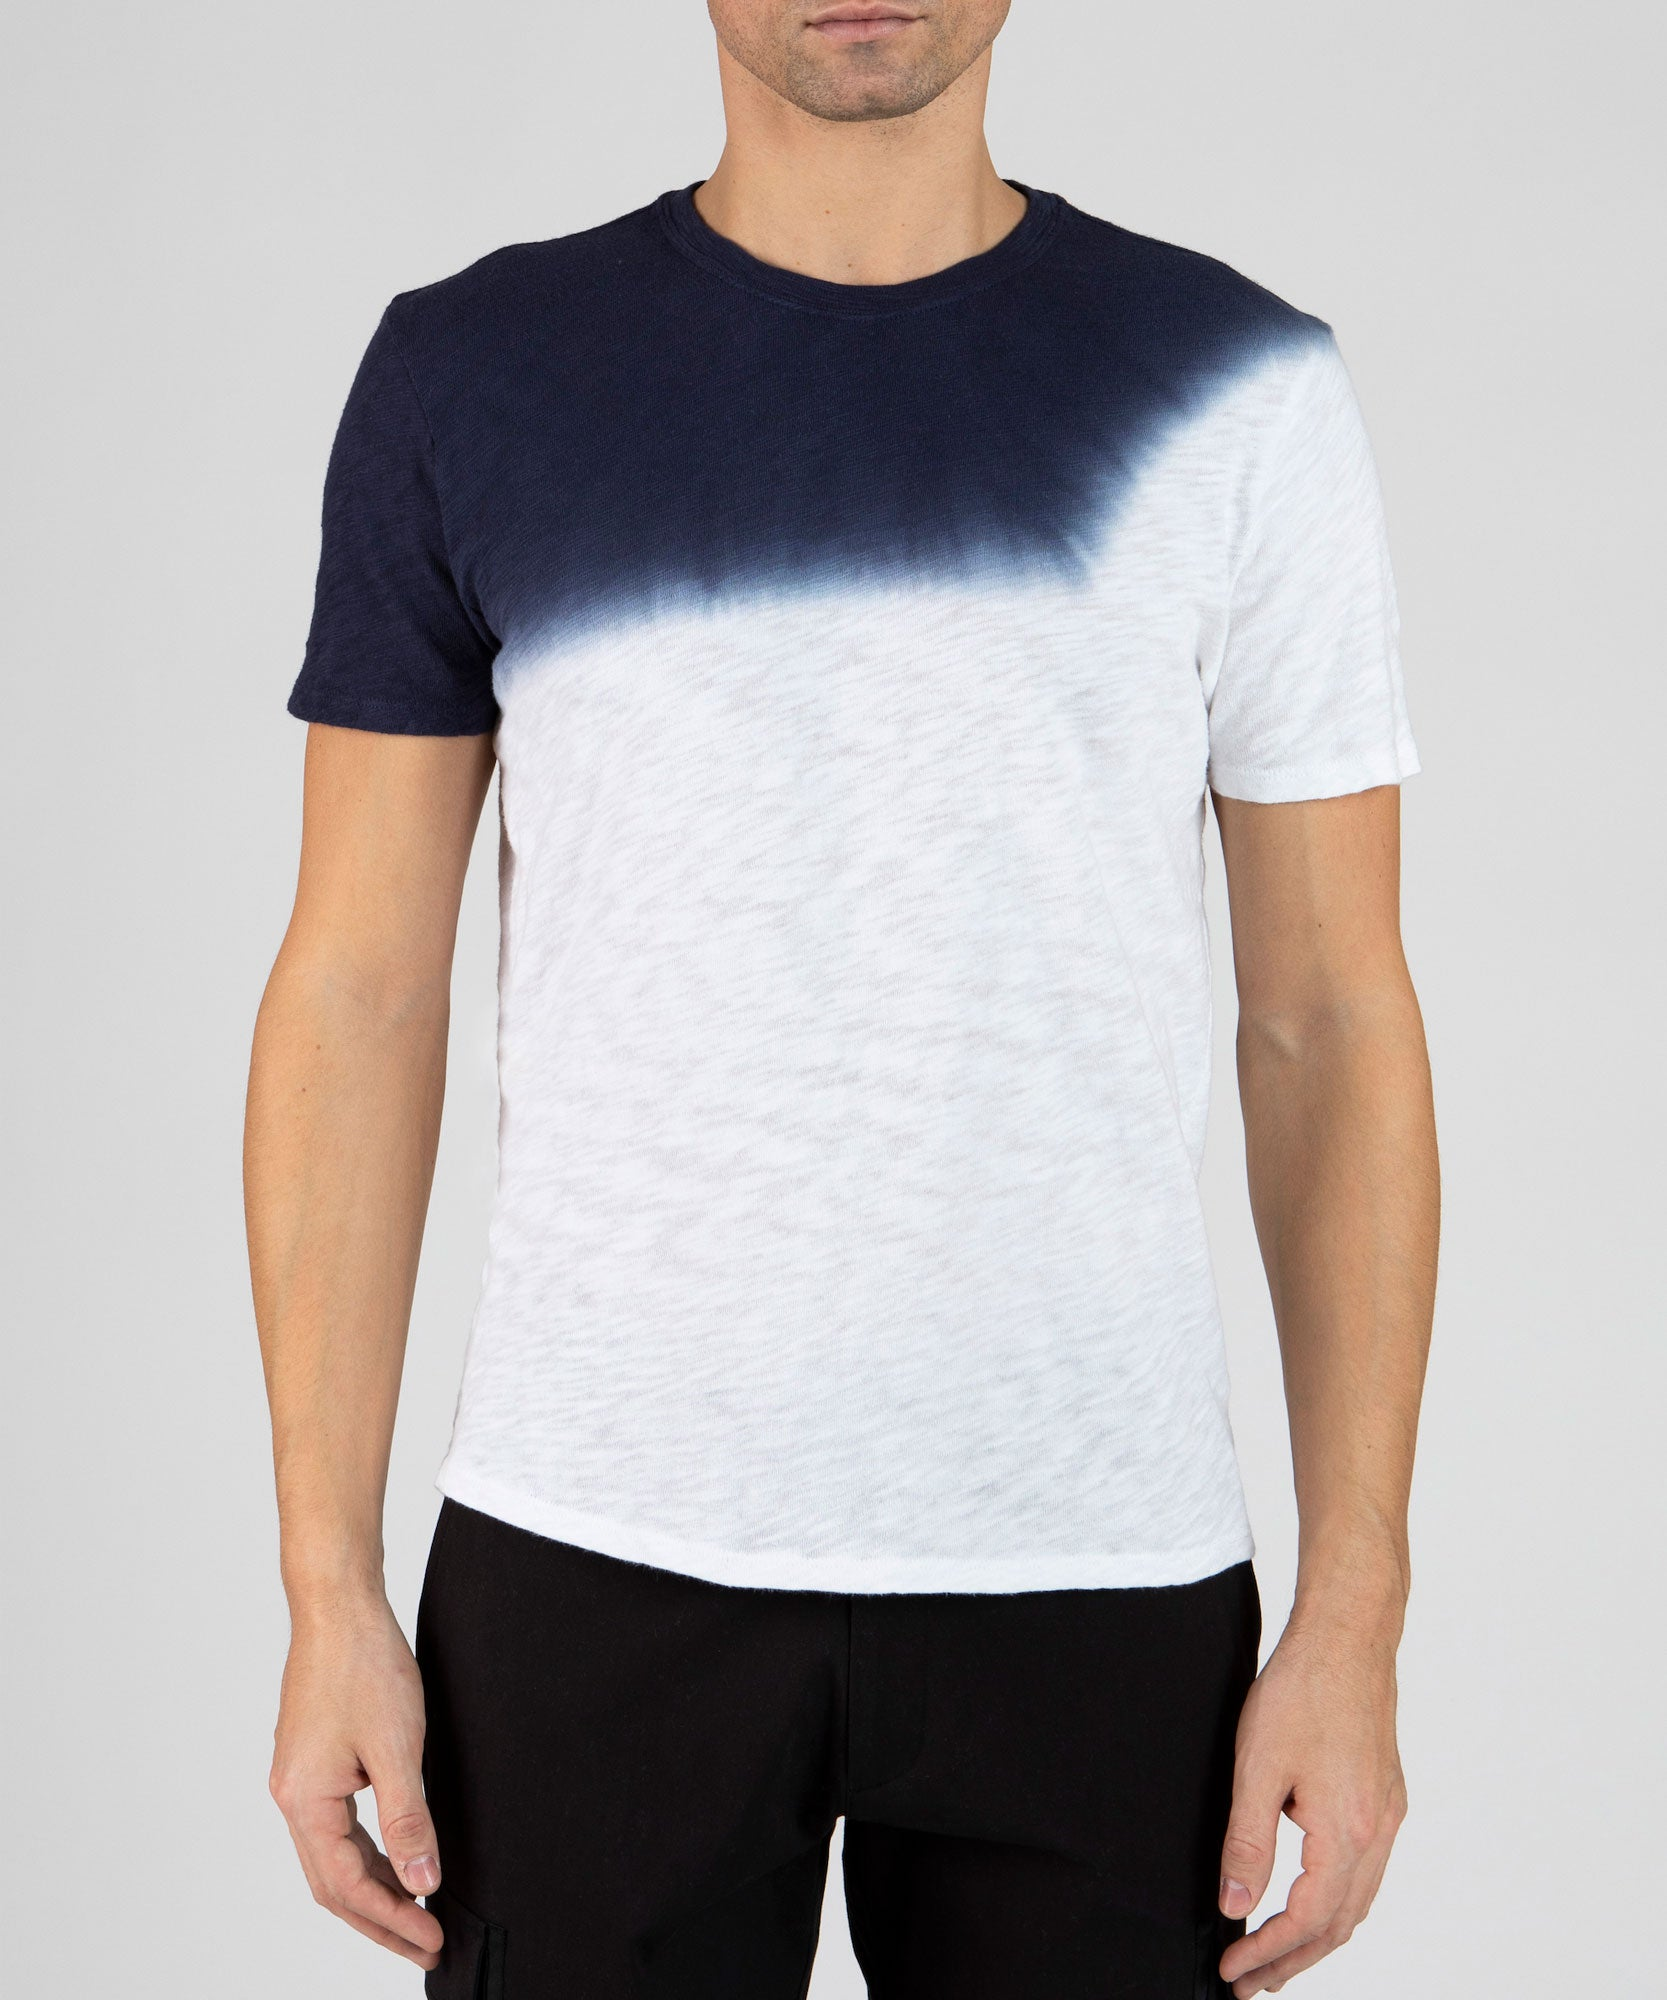 White and Midnight Slub Jersey Dip Dye Crew Neck Tee - Men's Cotton Short Sleeve Tee by ATM Anthony Thomas Melillo